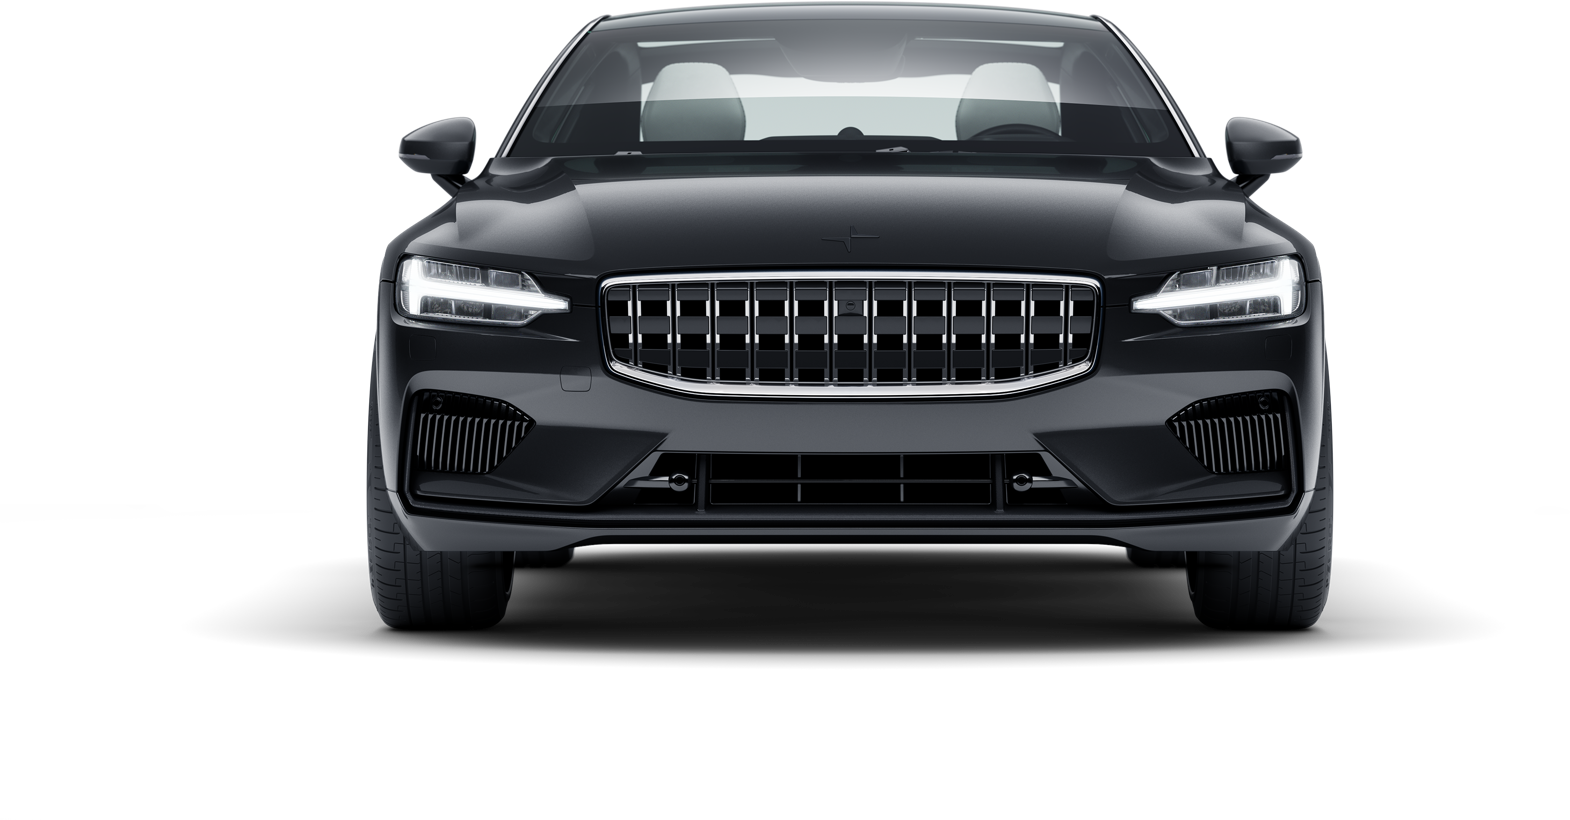 Front view of black Polestar 1